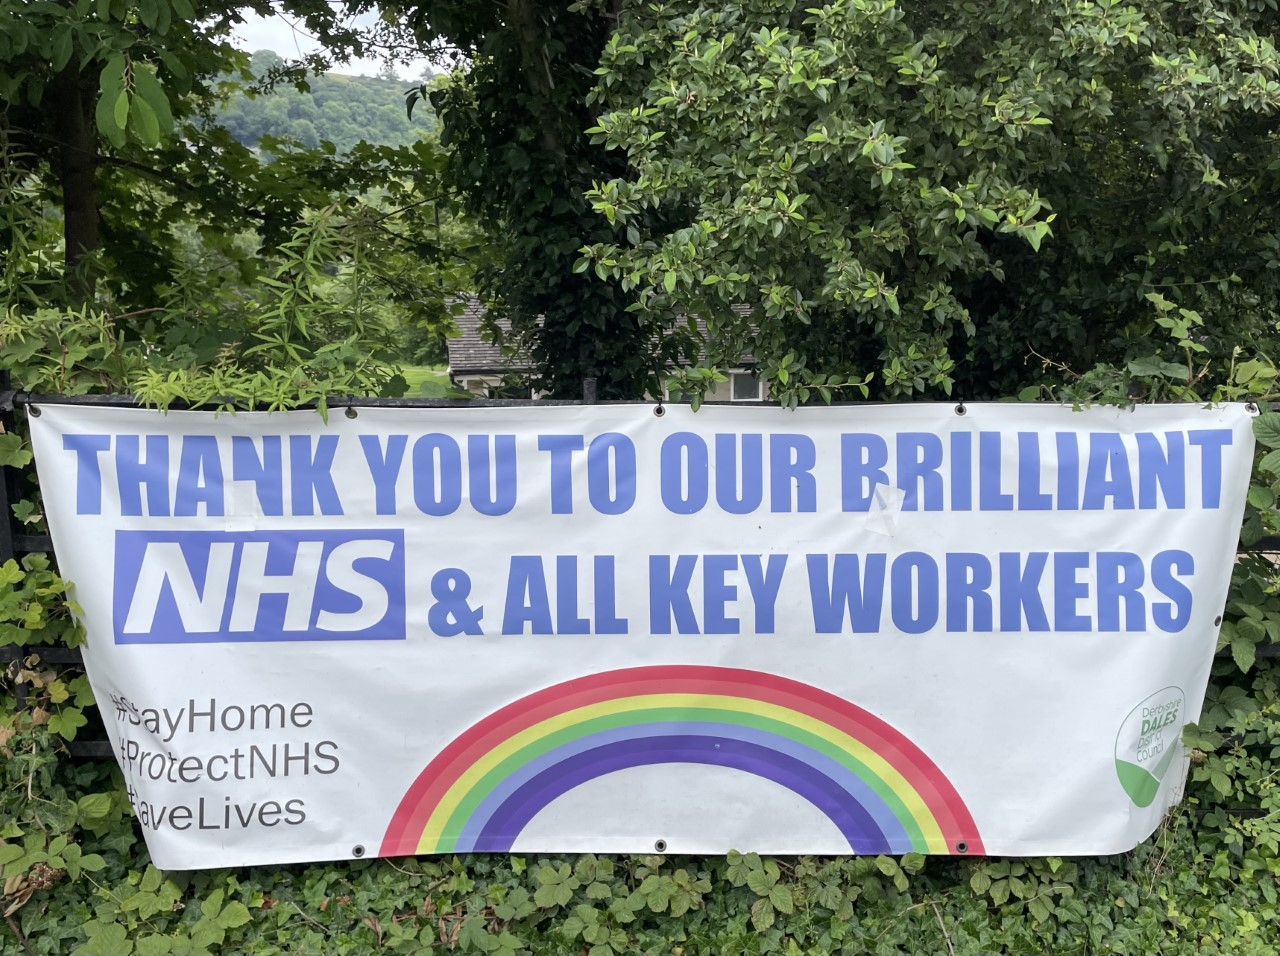 Another rainbow banner for thanking the NHS and all key workers